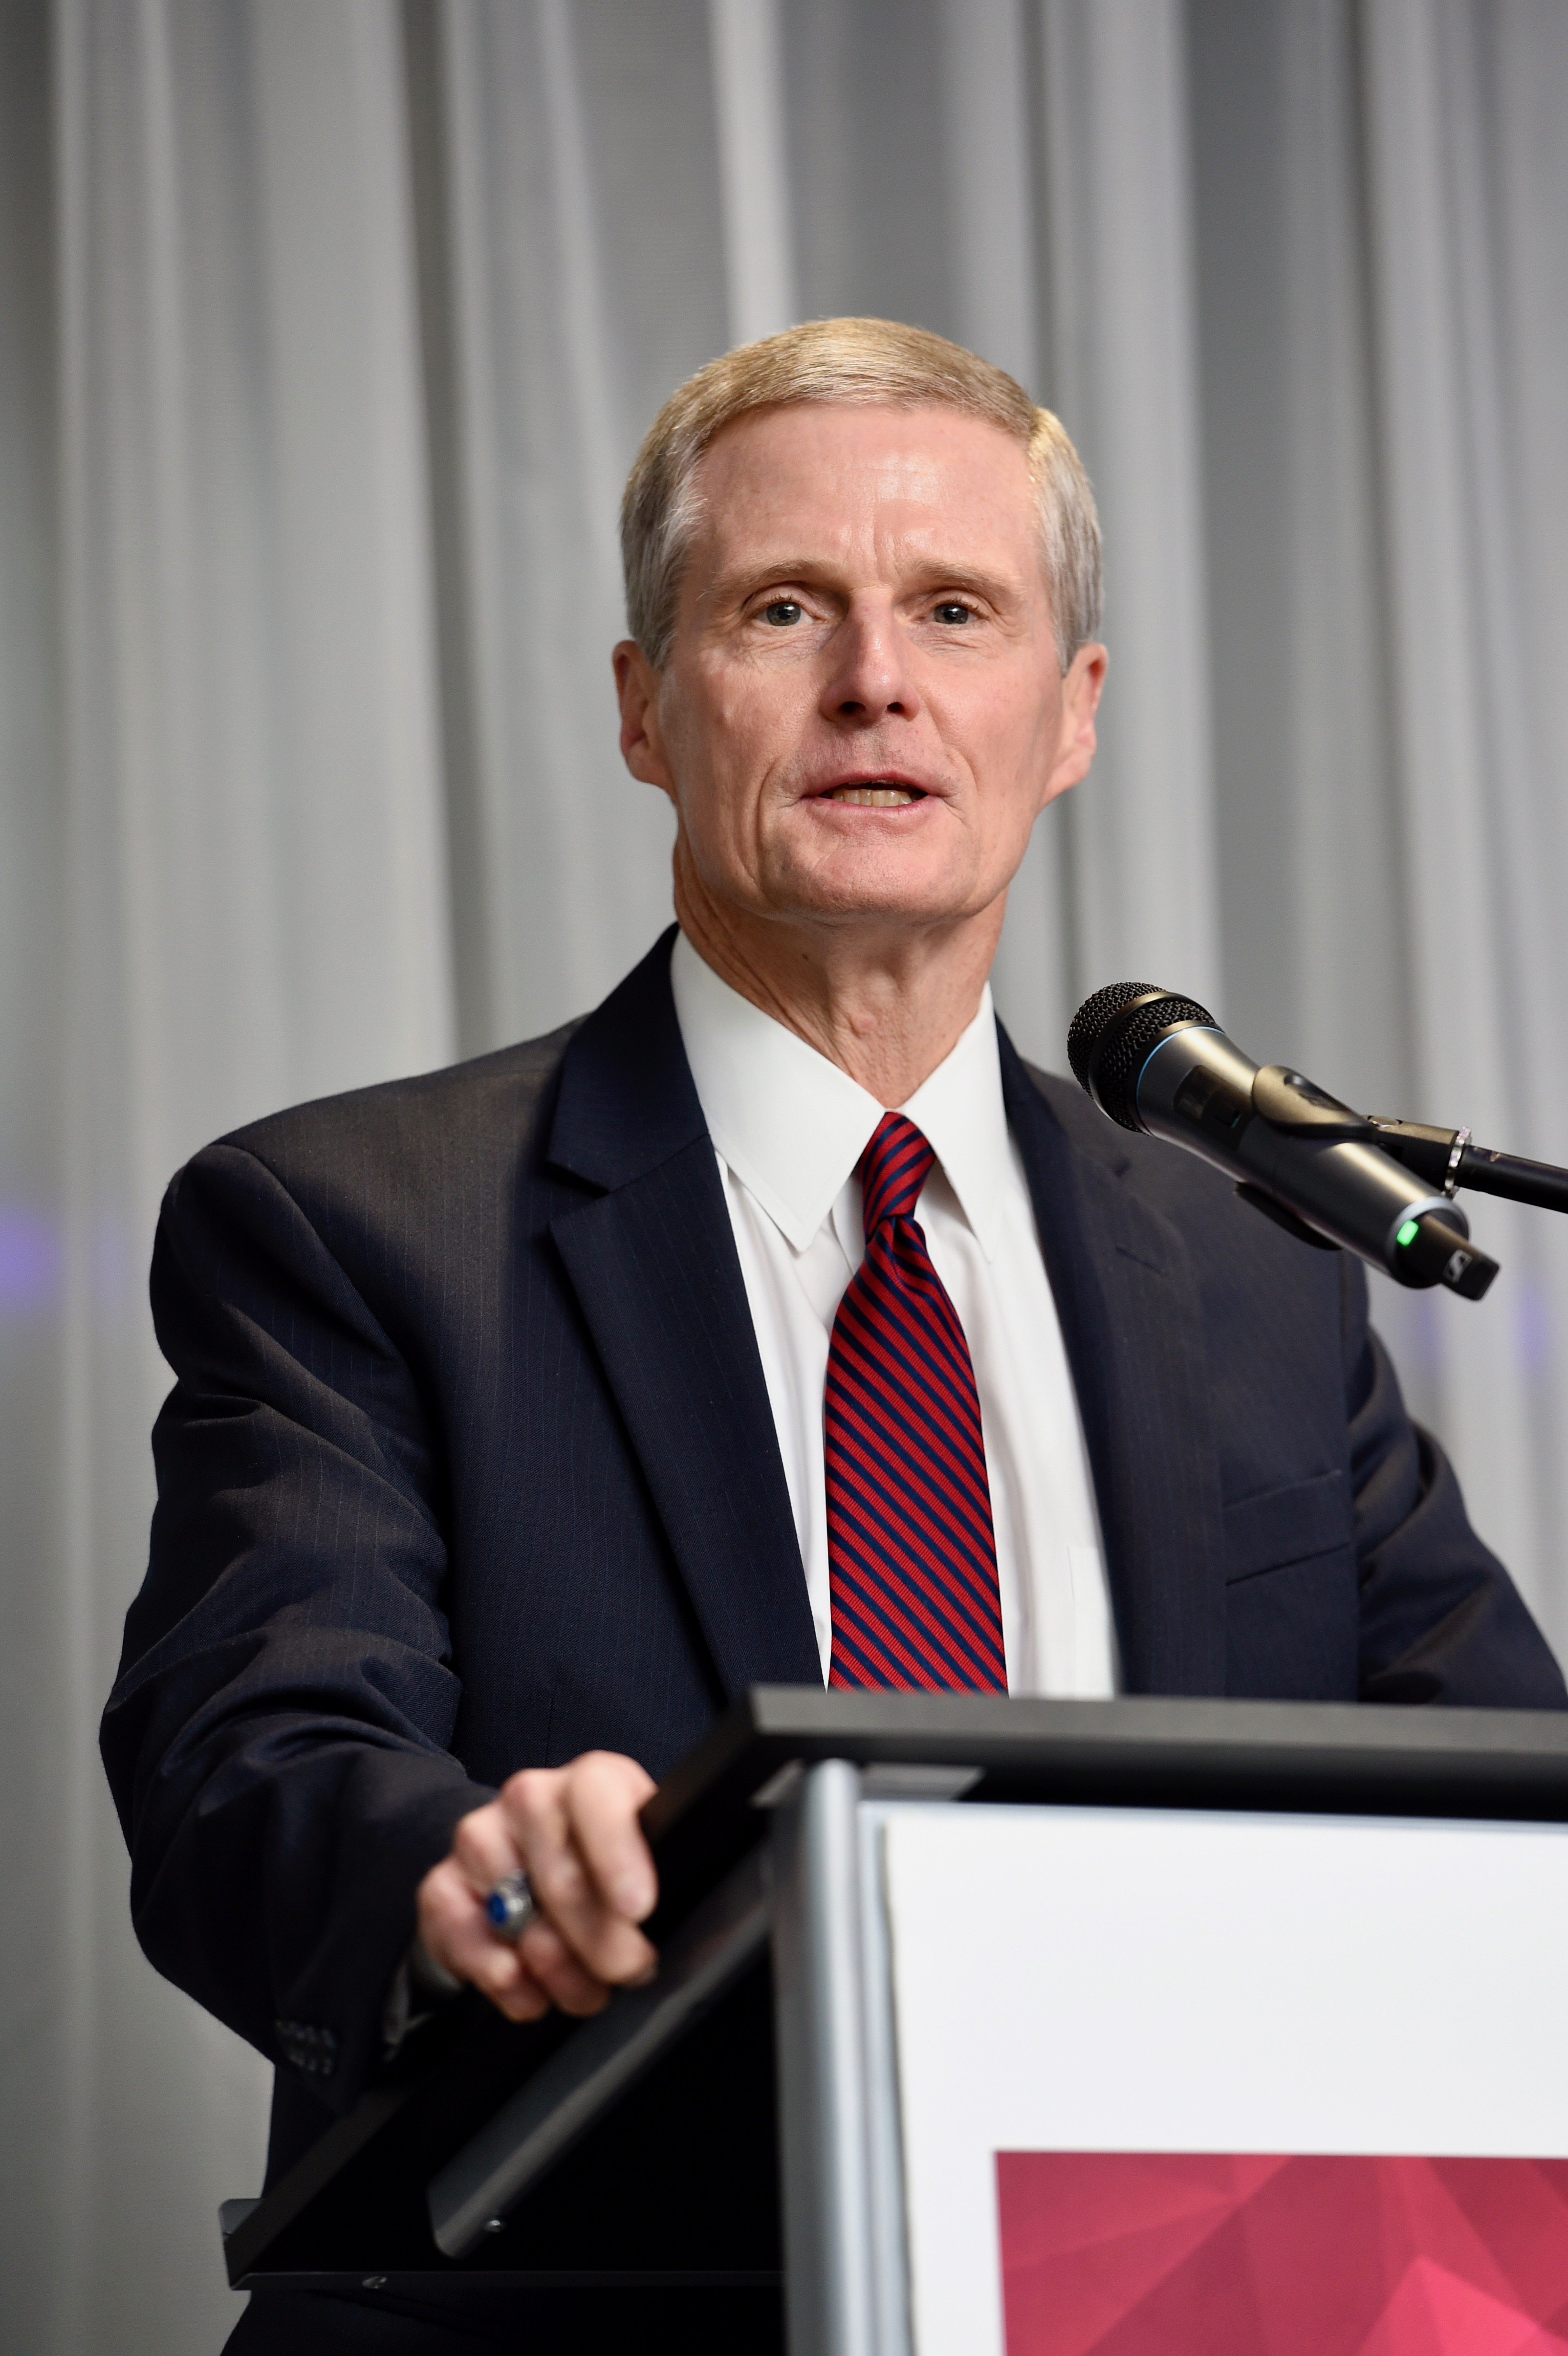 Elder David A Bednar of the Quorum of the Twelve Apostles speaks at a RootsTech London VIP dinner and reception Thursday, Oct. 24, 2019, in London, Great Britain.